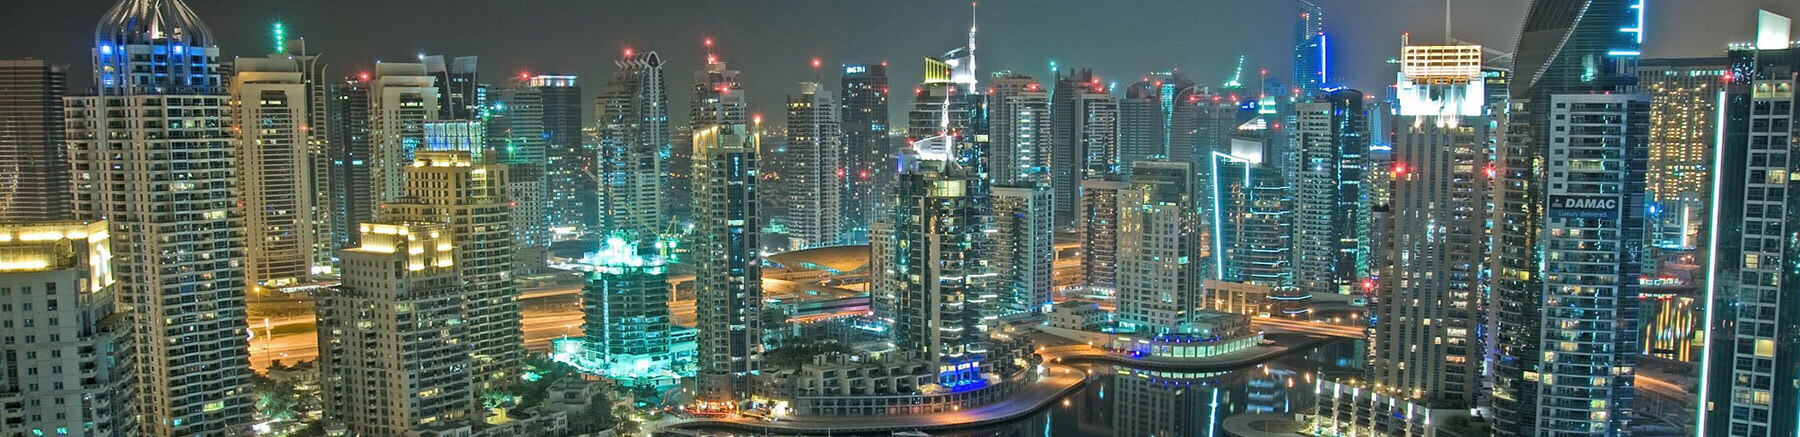 Broad aerial view of Dubai, United Arab Emirates by night